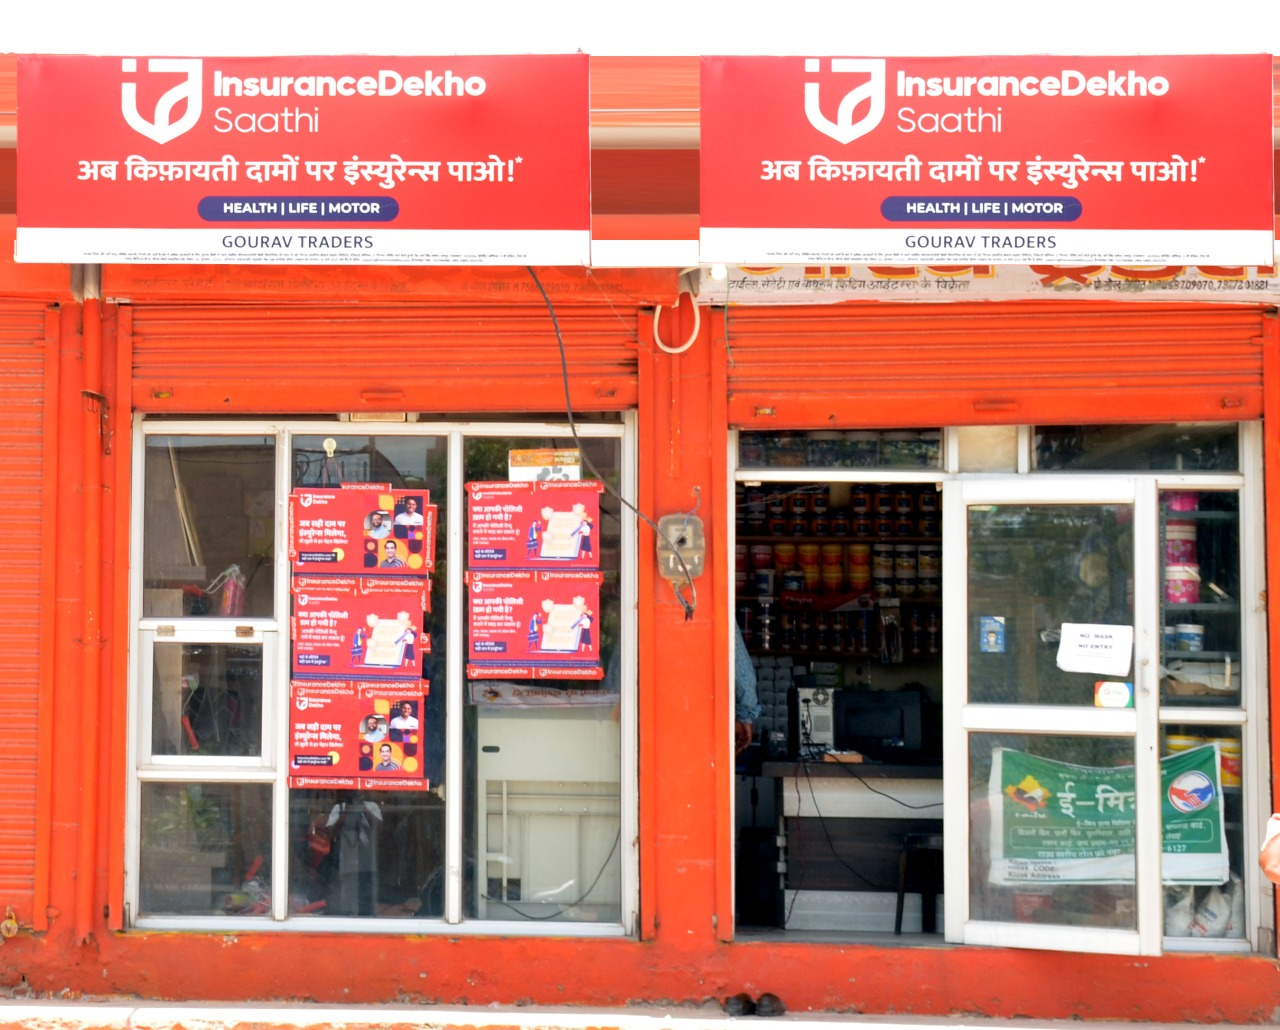 InsuranceDekho to Partner with 50,000 Micro-Entrepreneurs to unlock offline insurance centres in Tier 3 and beyond cities